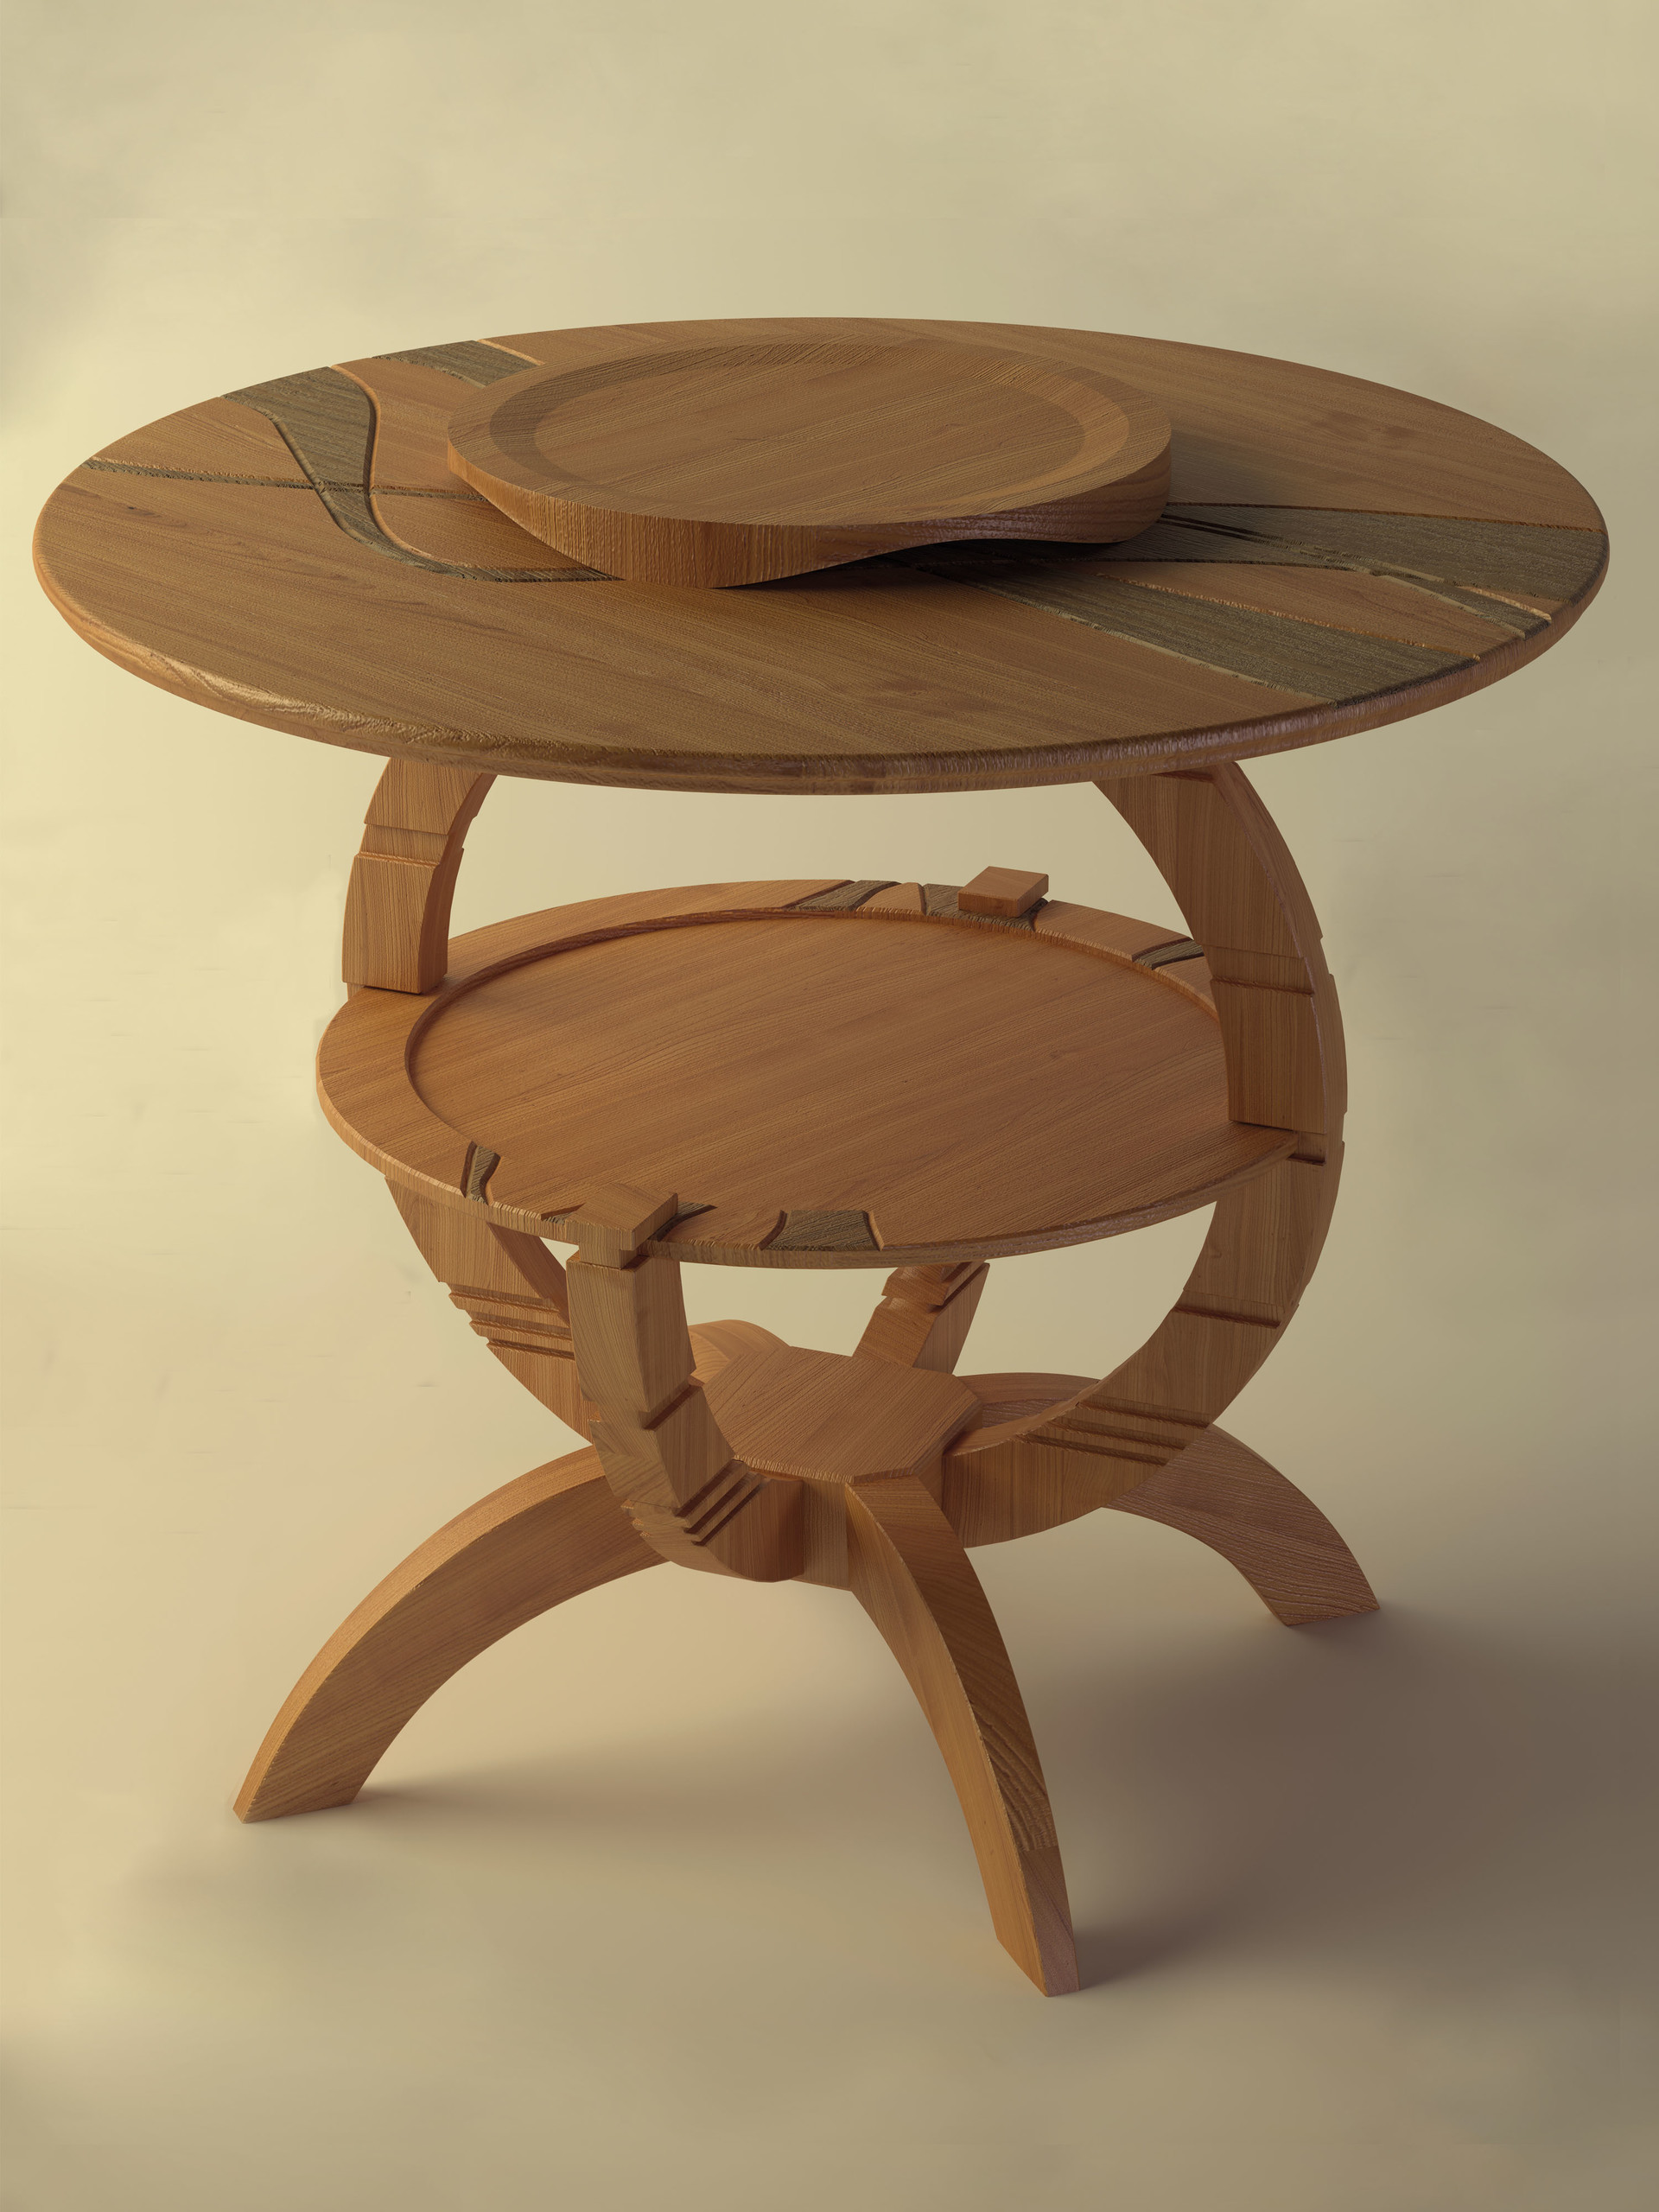 Swell Artstation Table Michael Korytskyy Evergreenethics Interior Chair Design Evergreenethicsorg